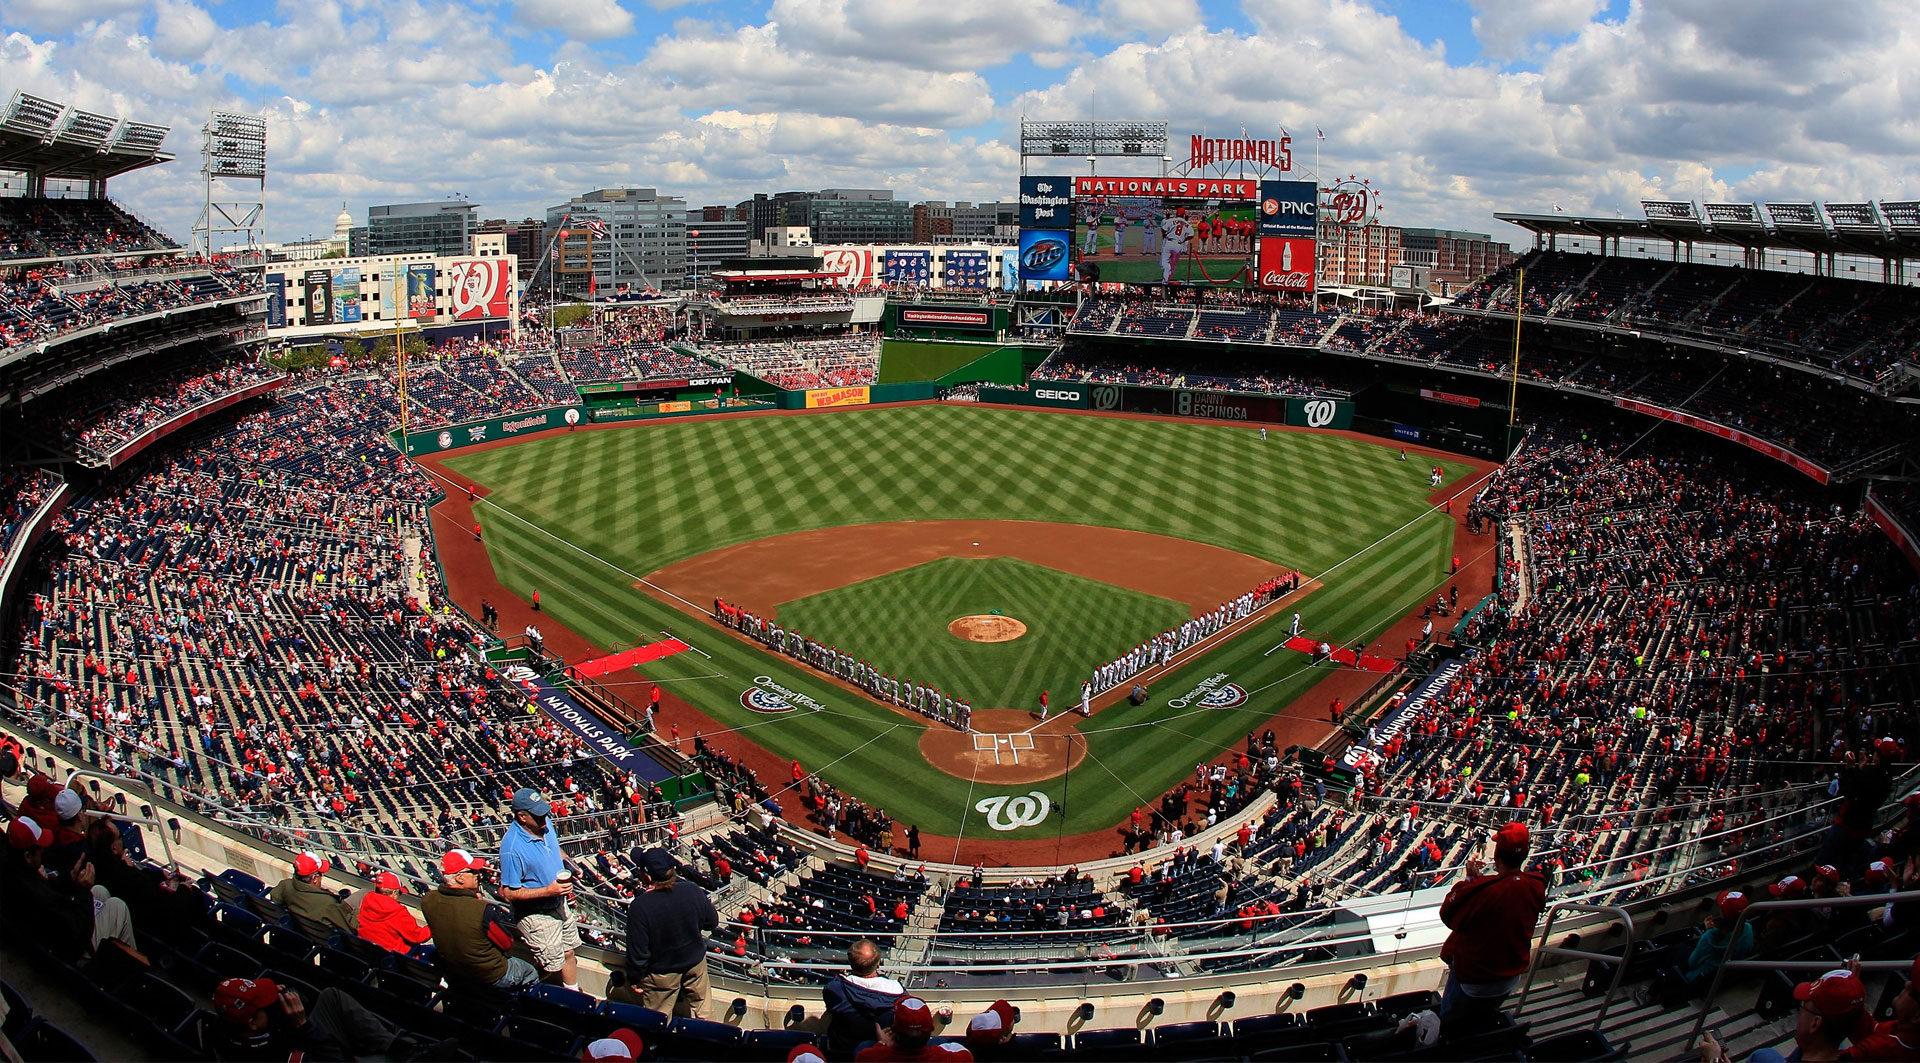 nationals park mlb all-star